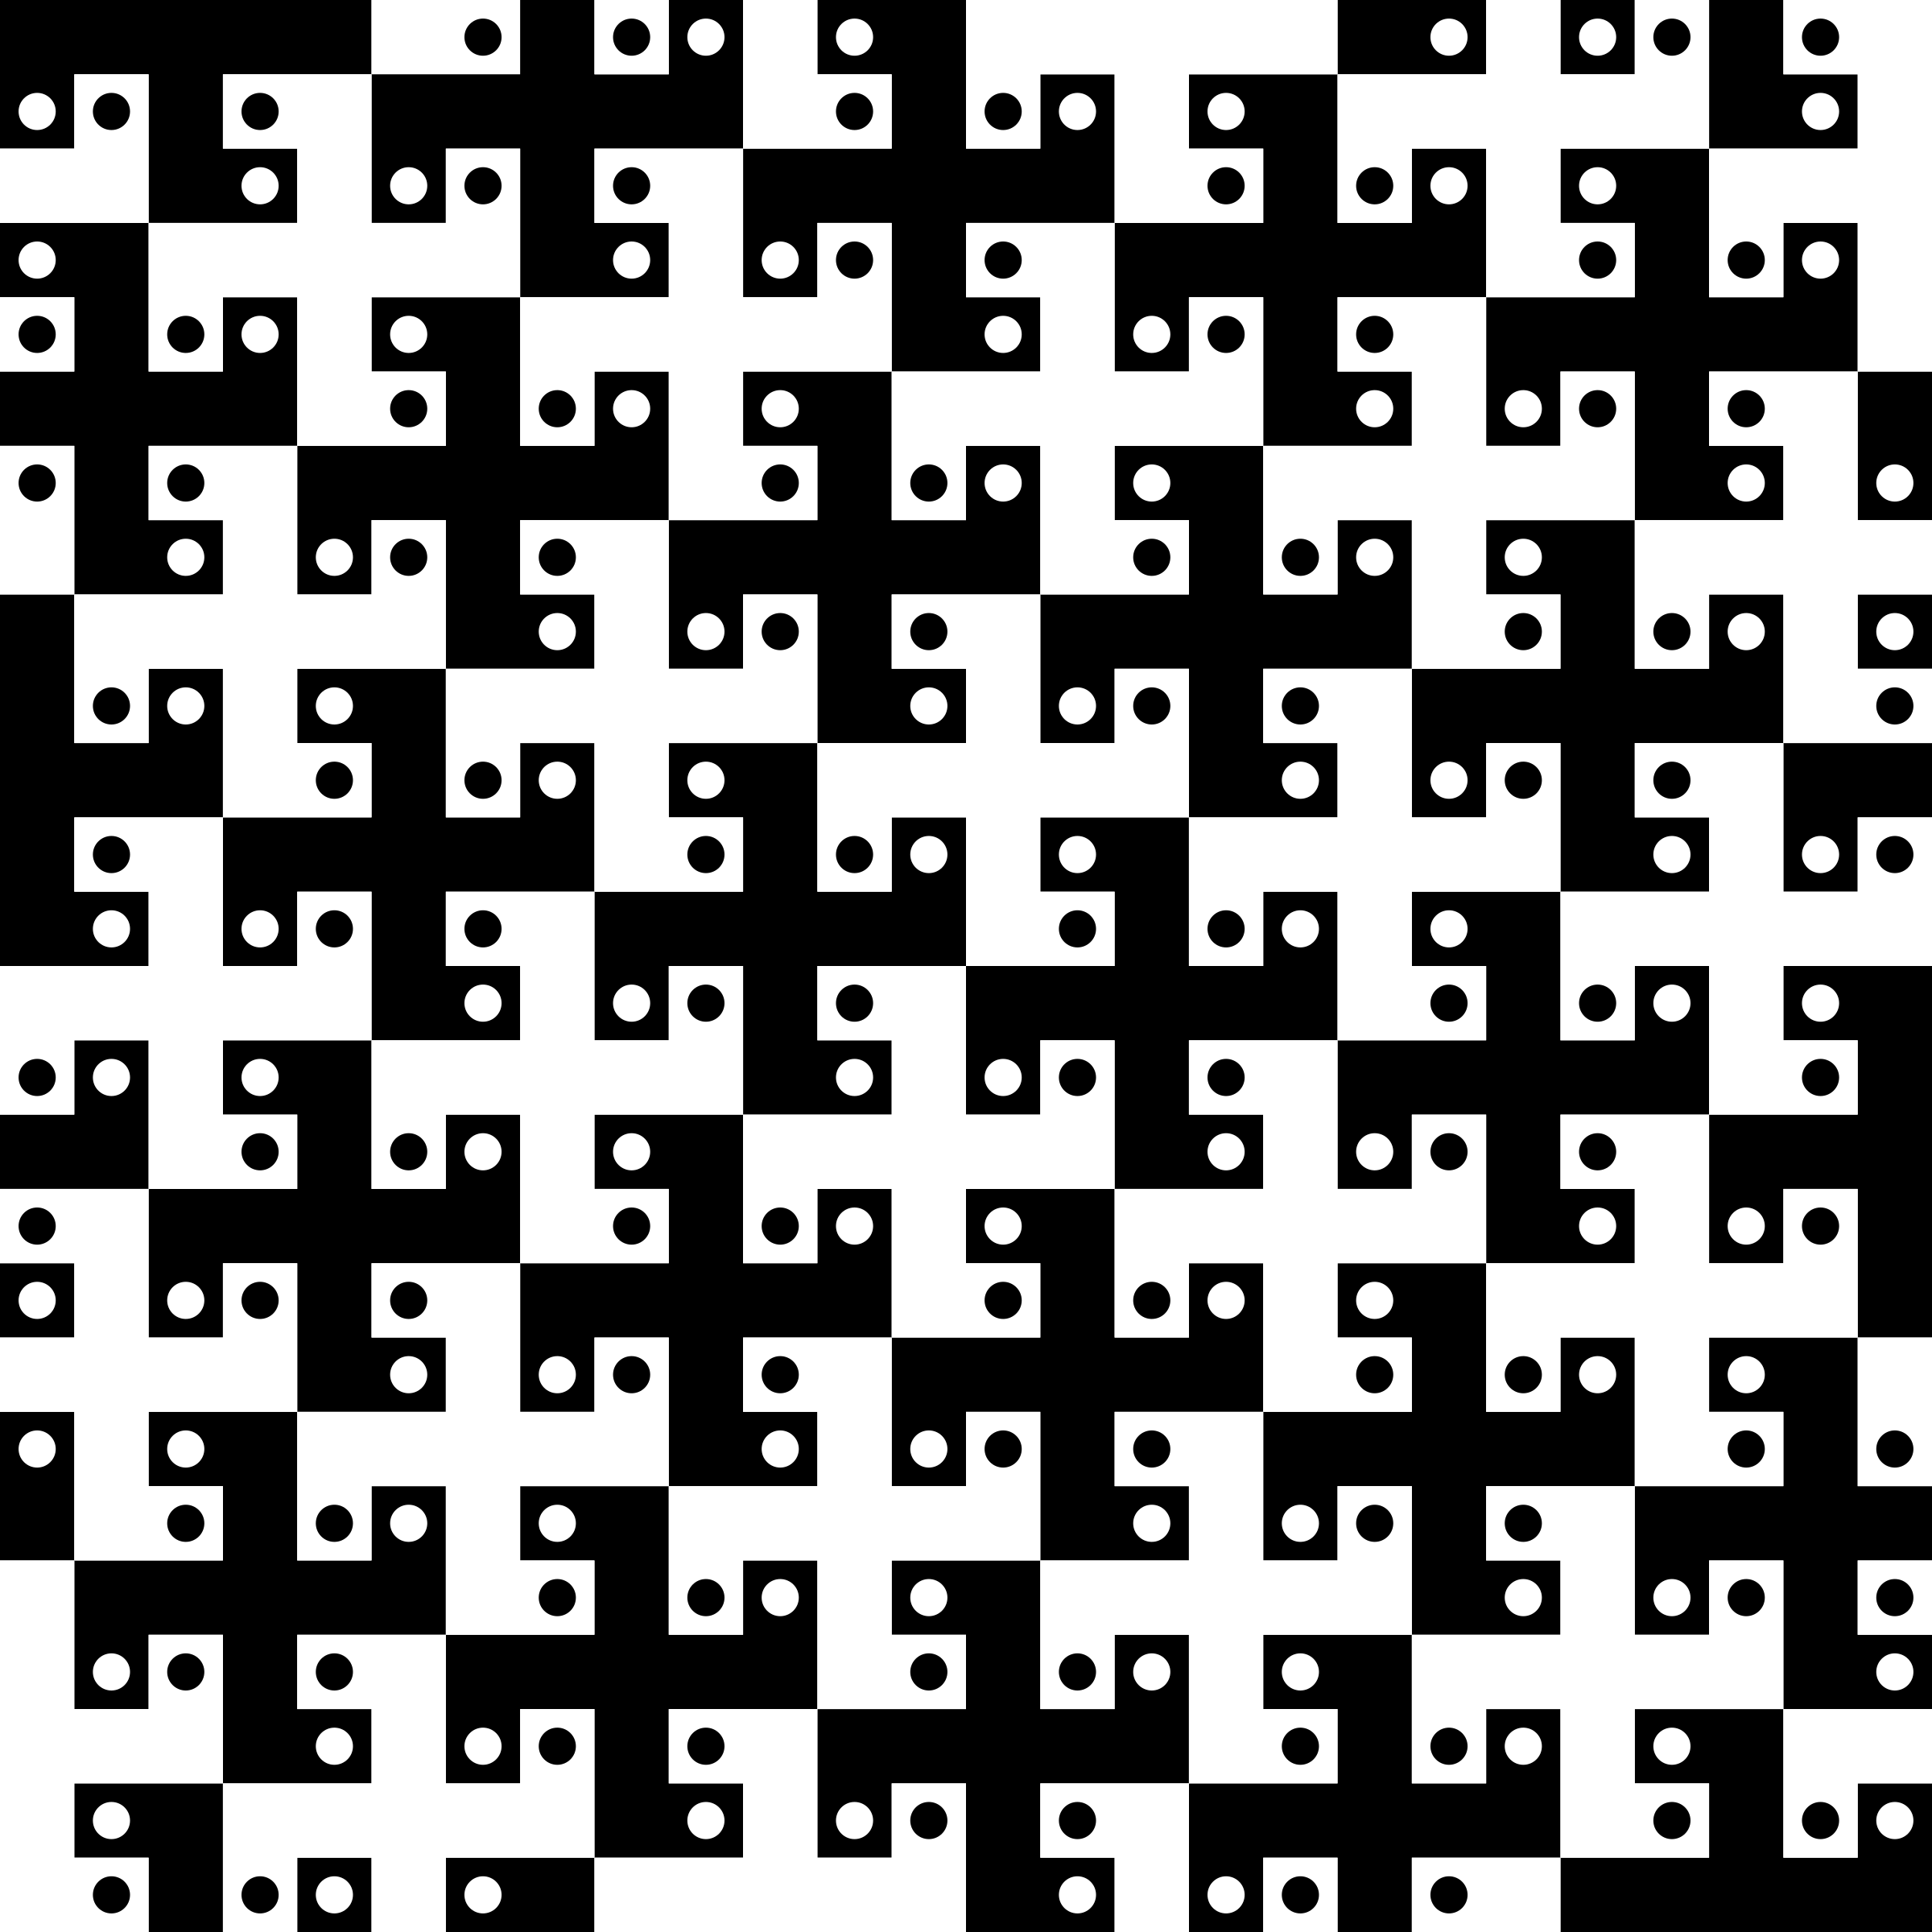 Swastika tessellation 2 by Firkin